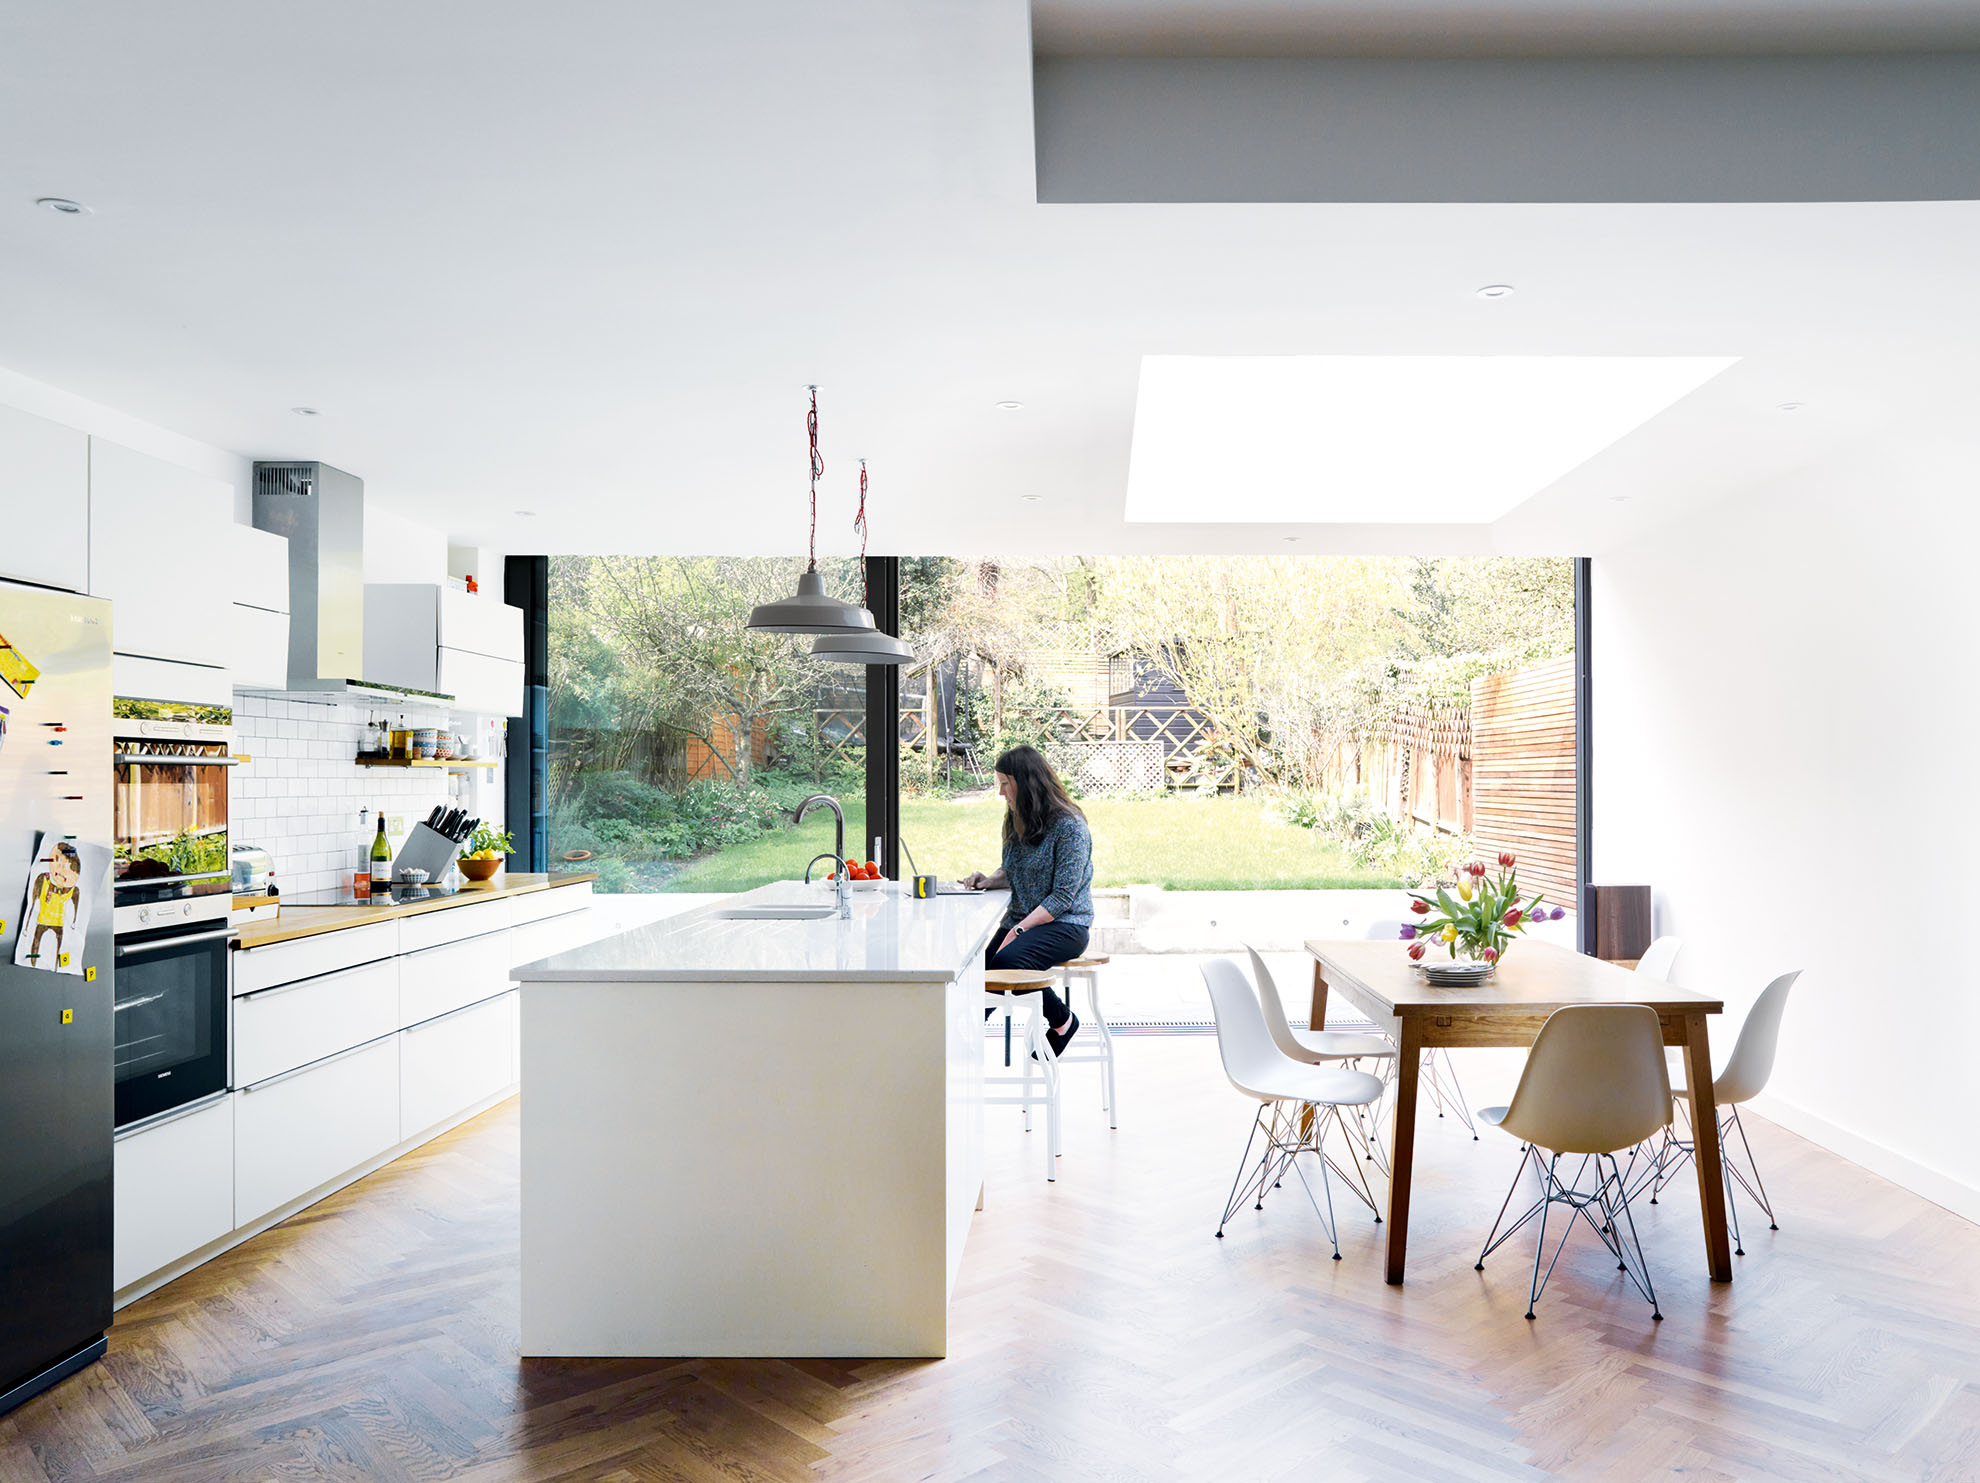 Kitchen case study: a light-filled open-plan kitchen diner and ...